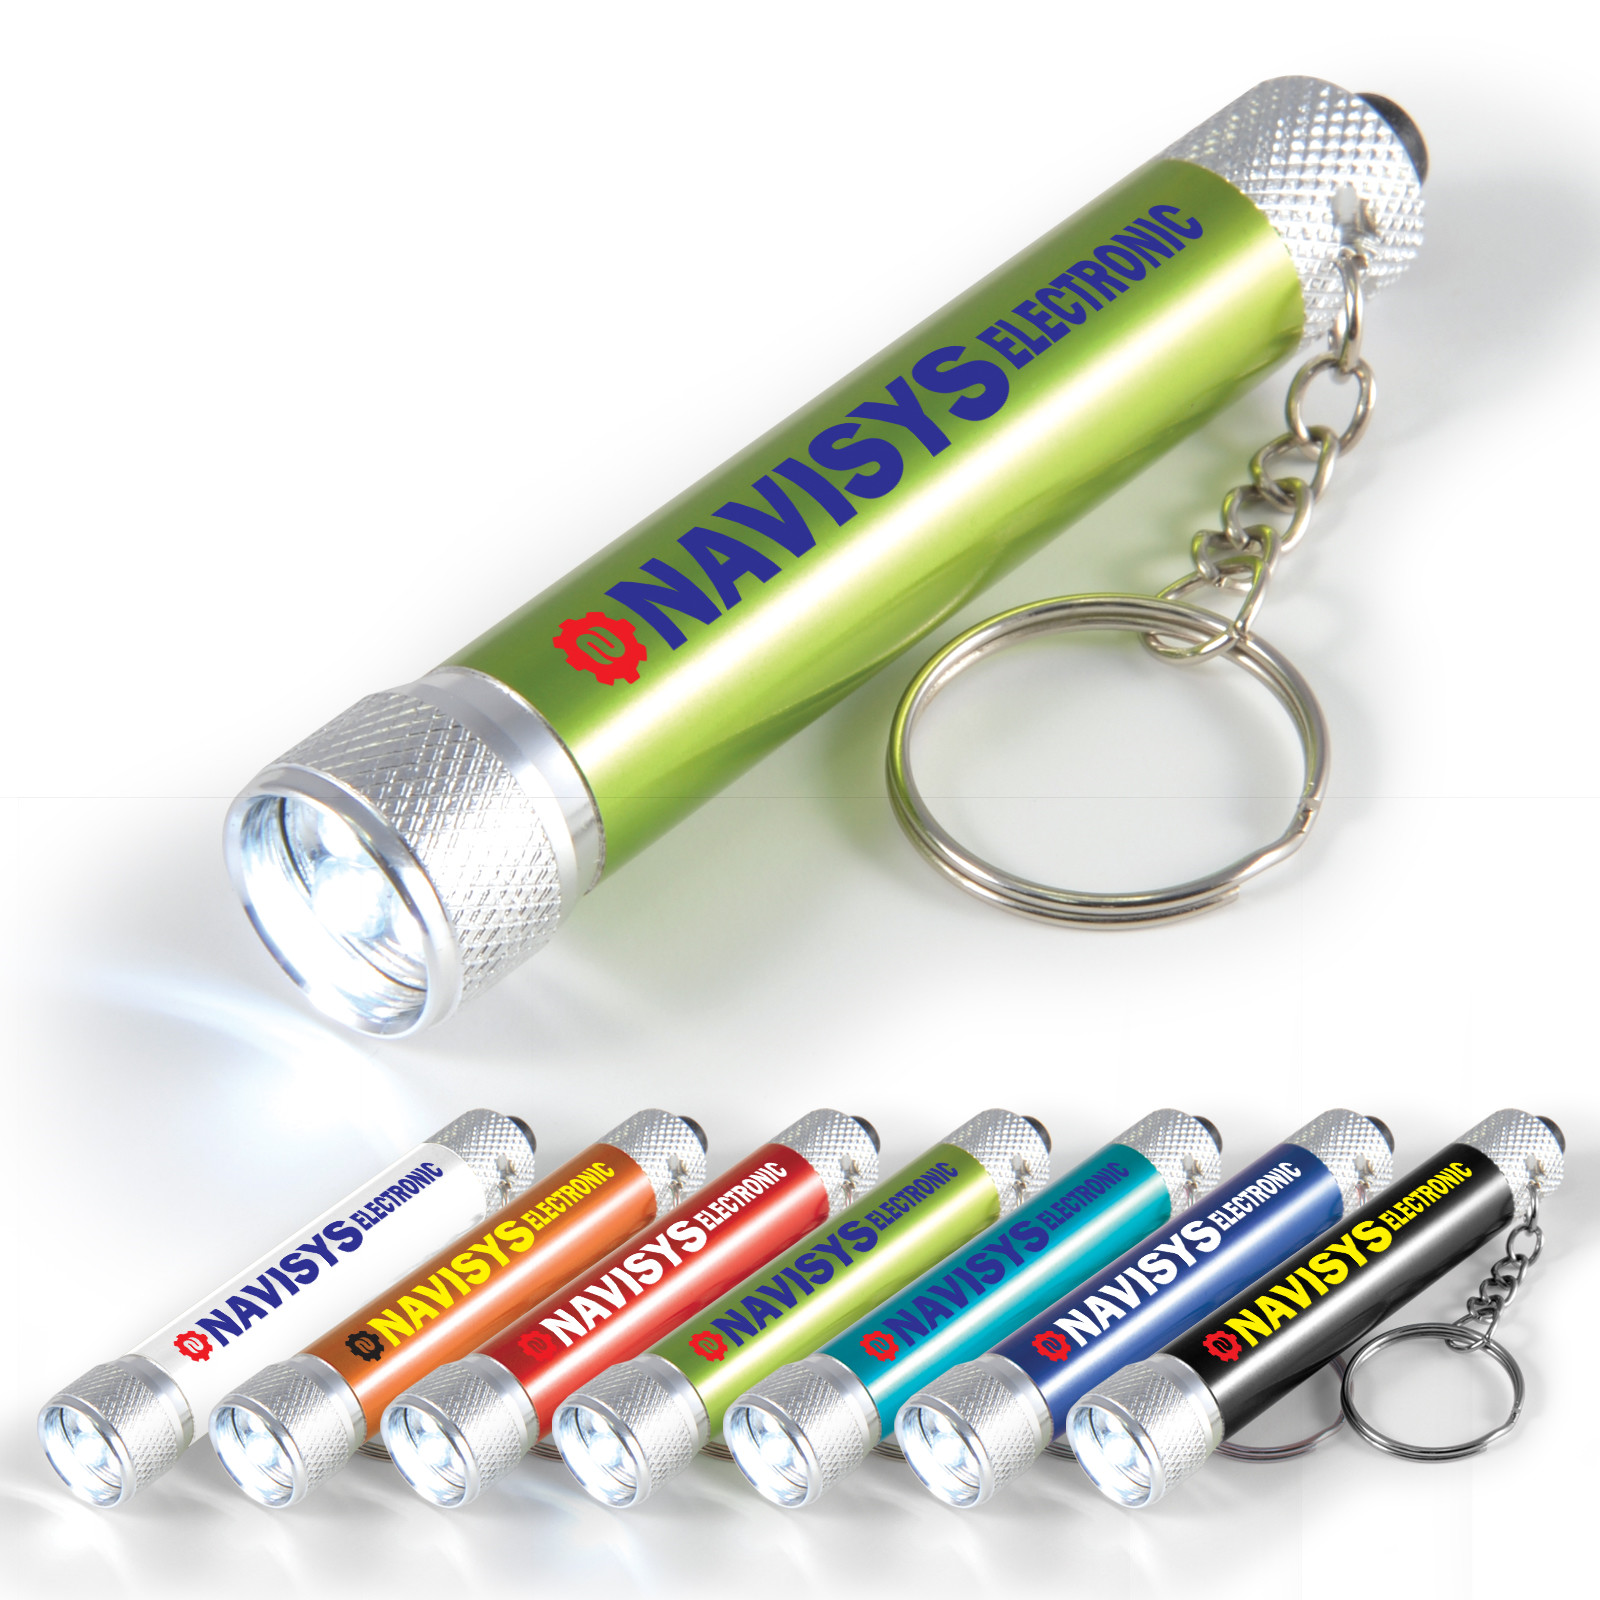 Promotional Product Orion Torch